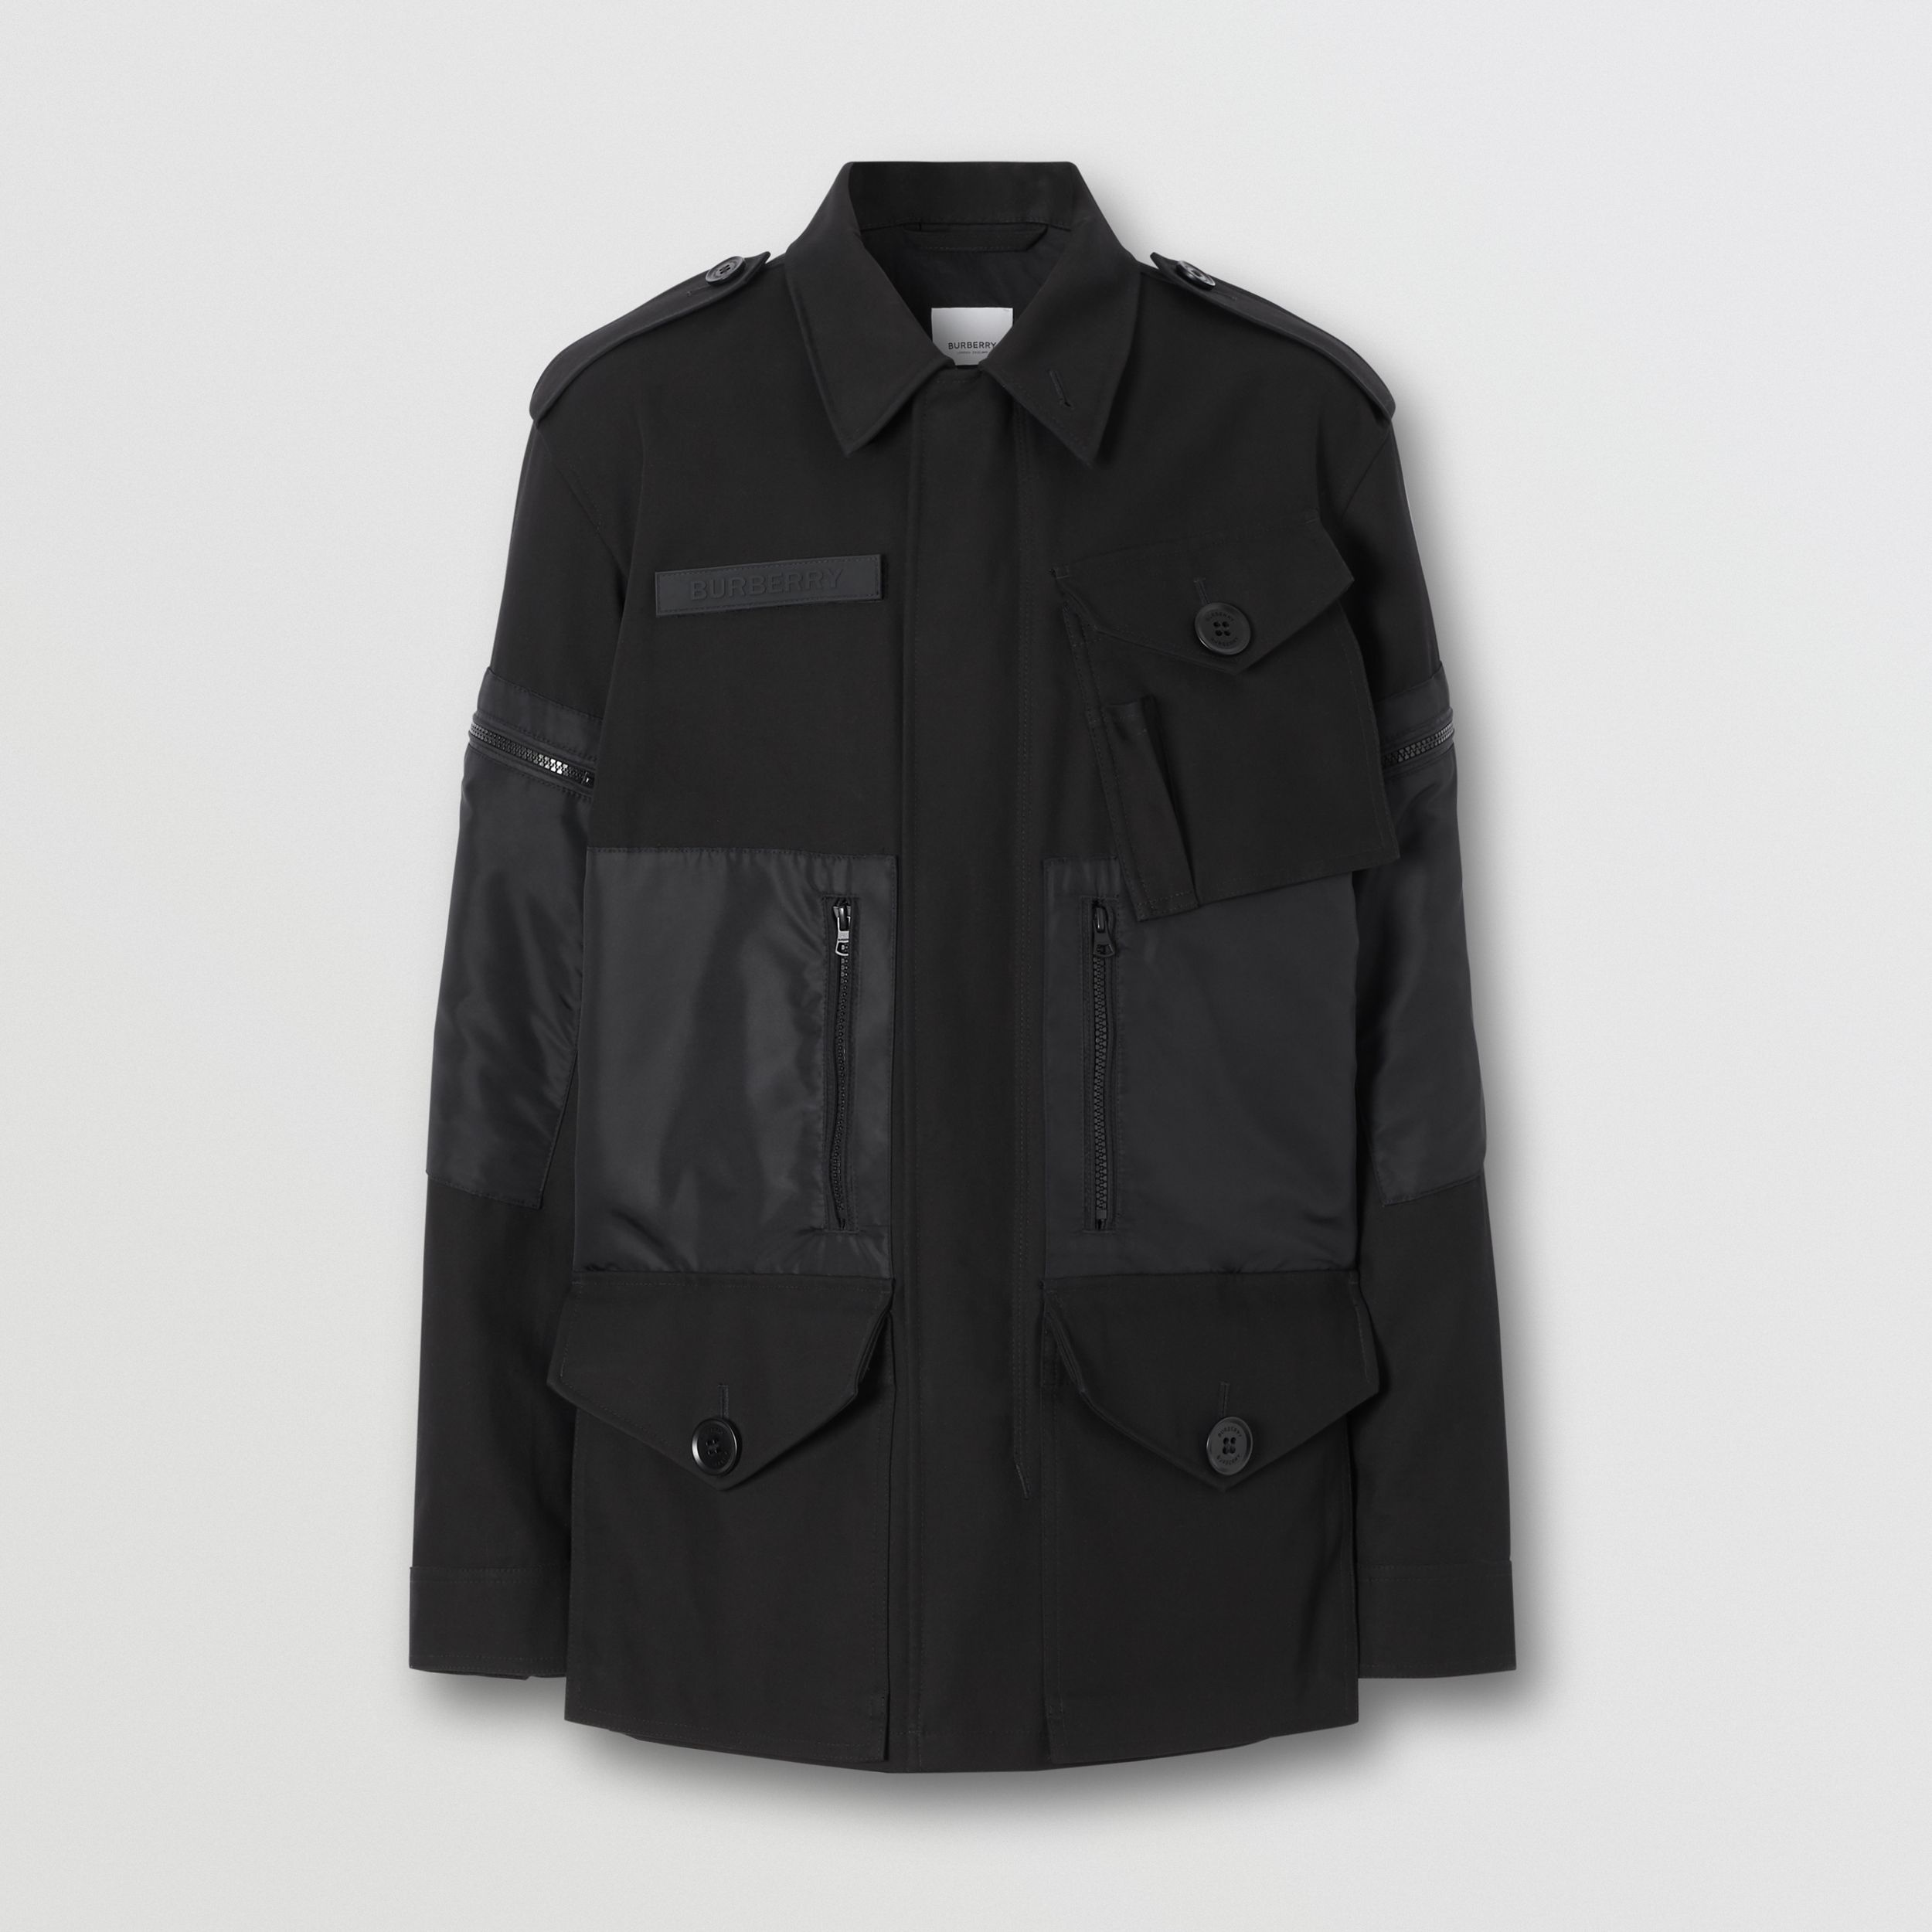 Cotton Gabardine Field Jacket in Black - Men | Burberry - 4